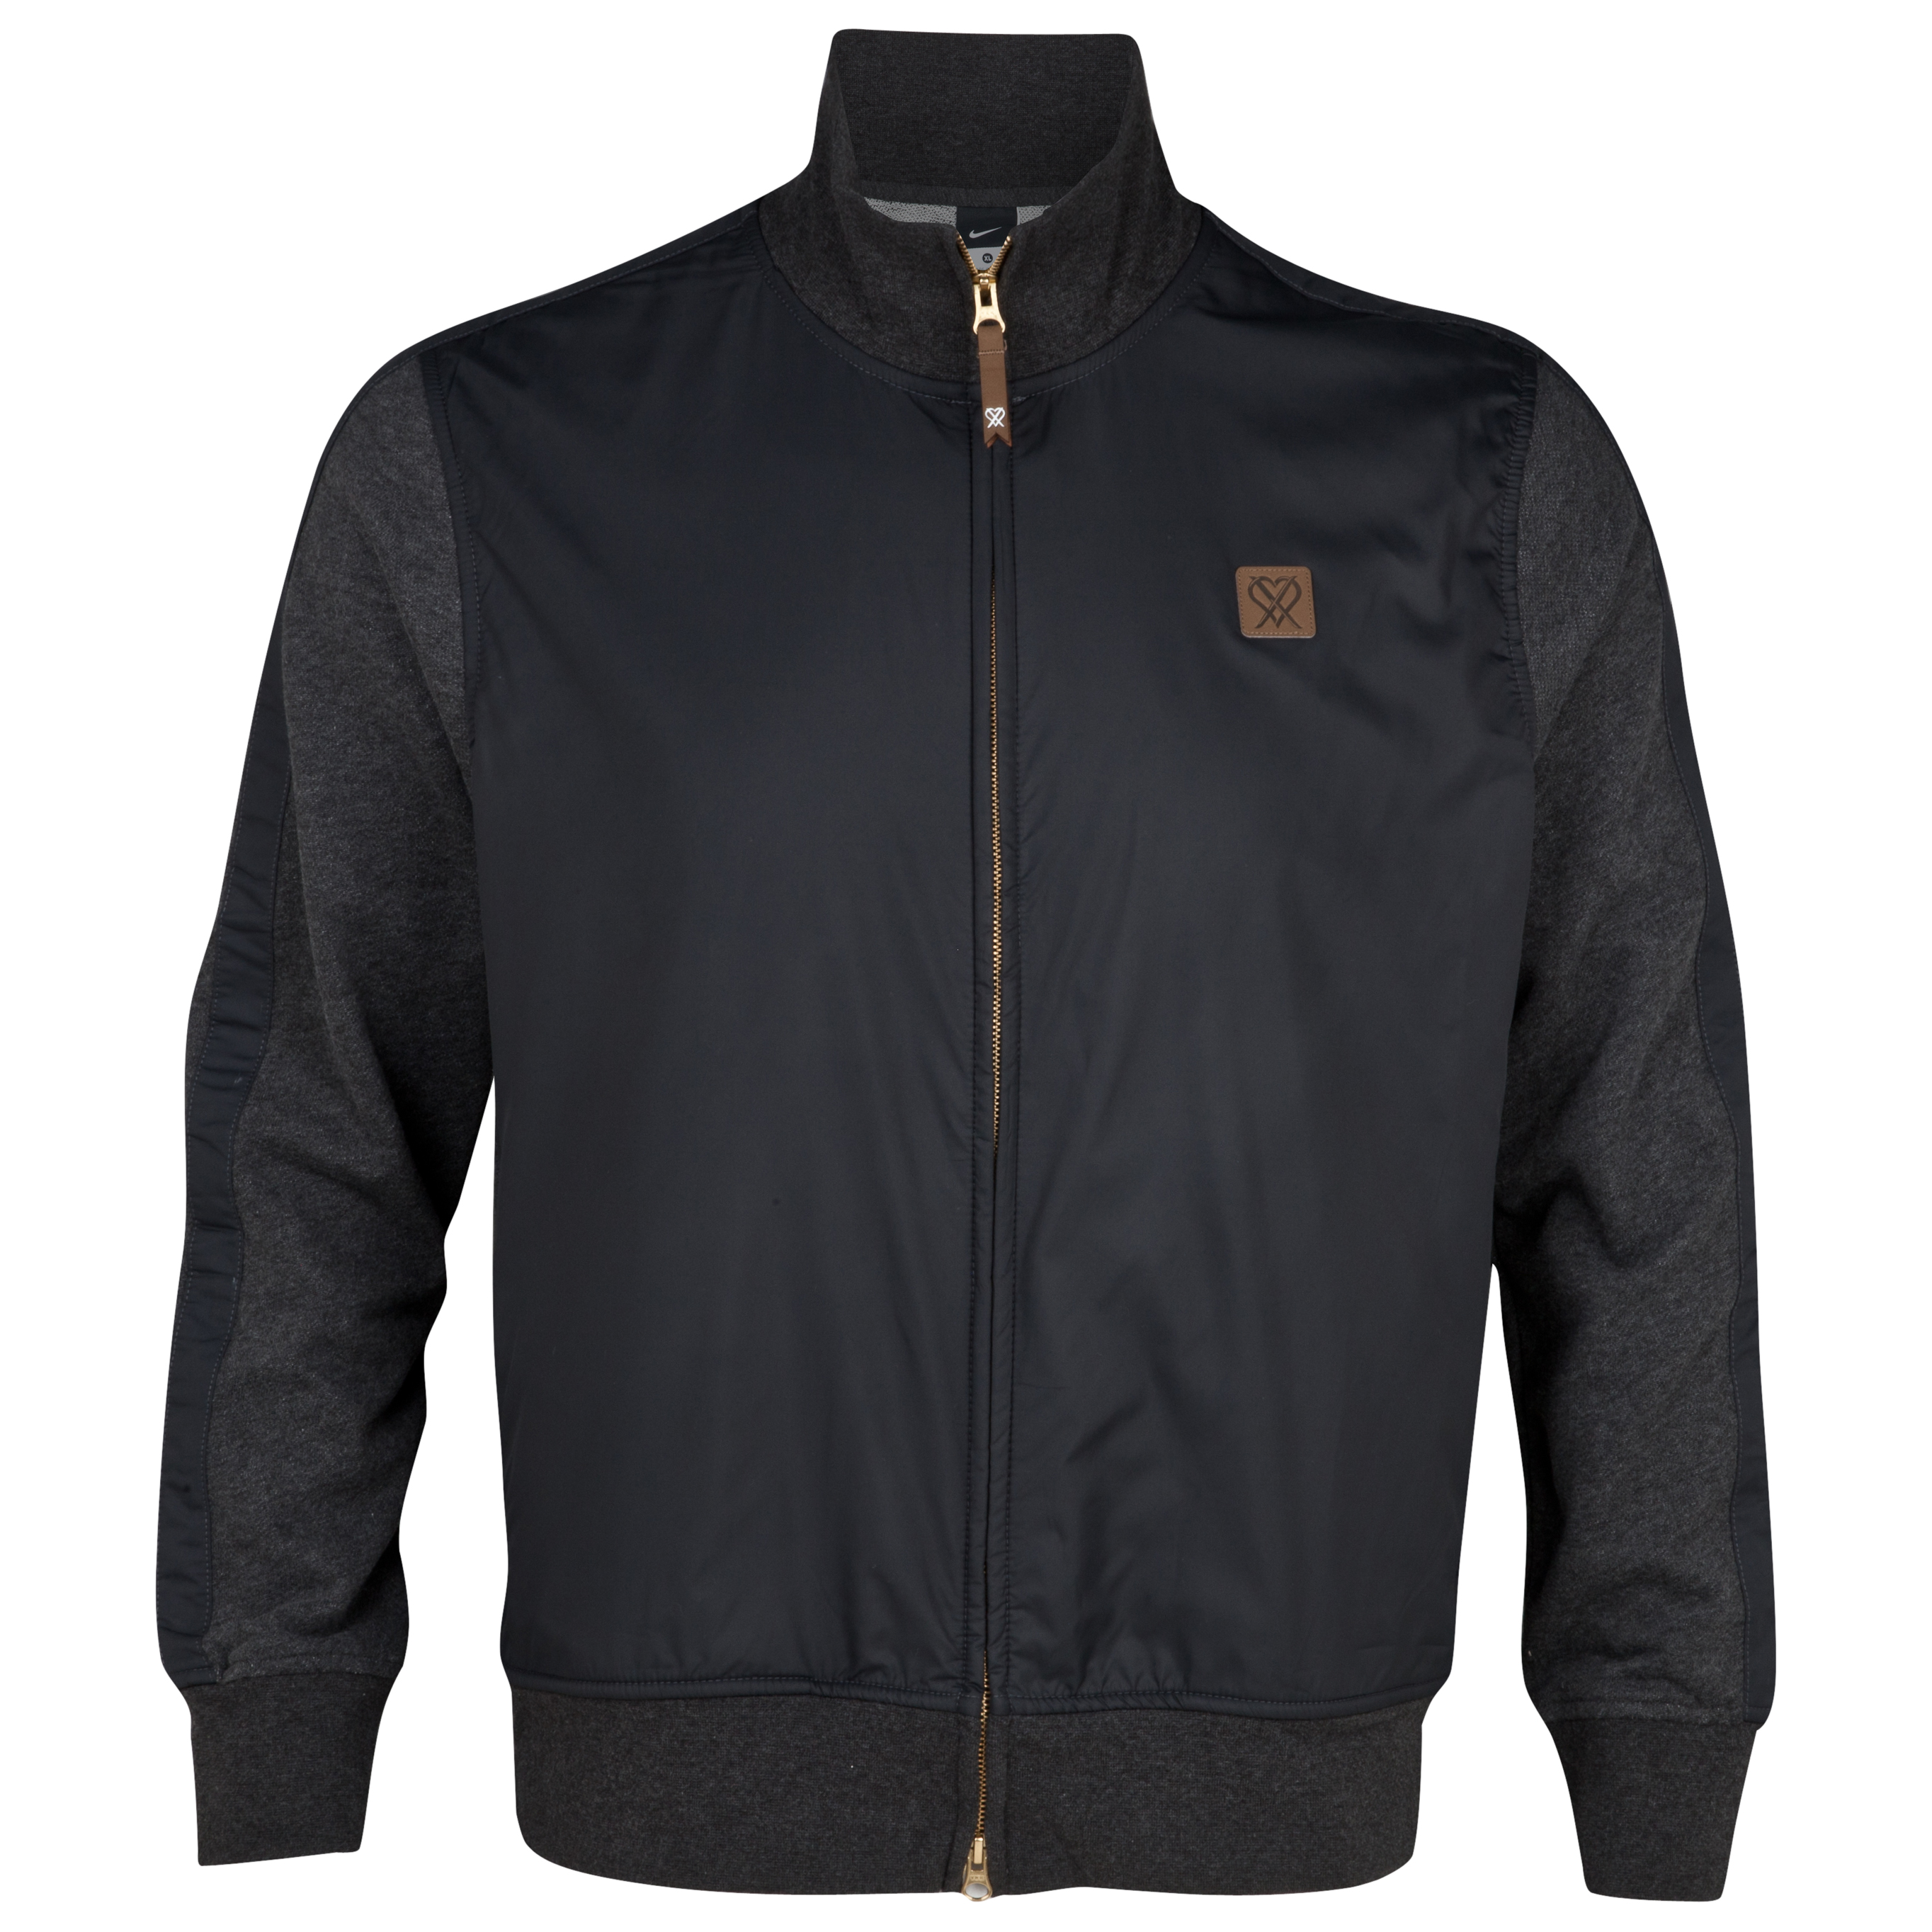 Nike CR Fleece N98 Jacket - Black Heather